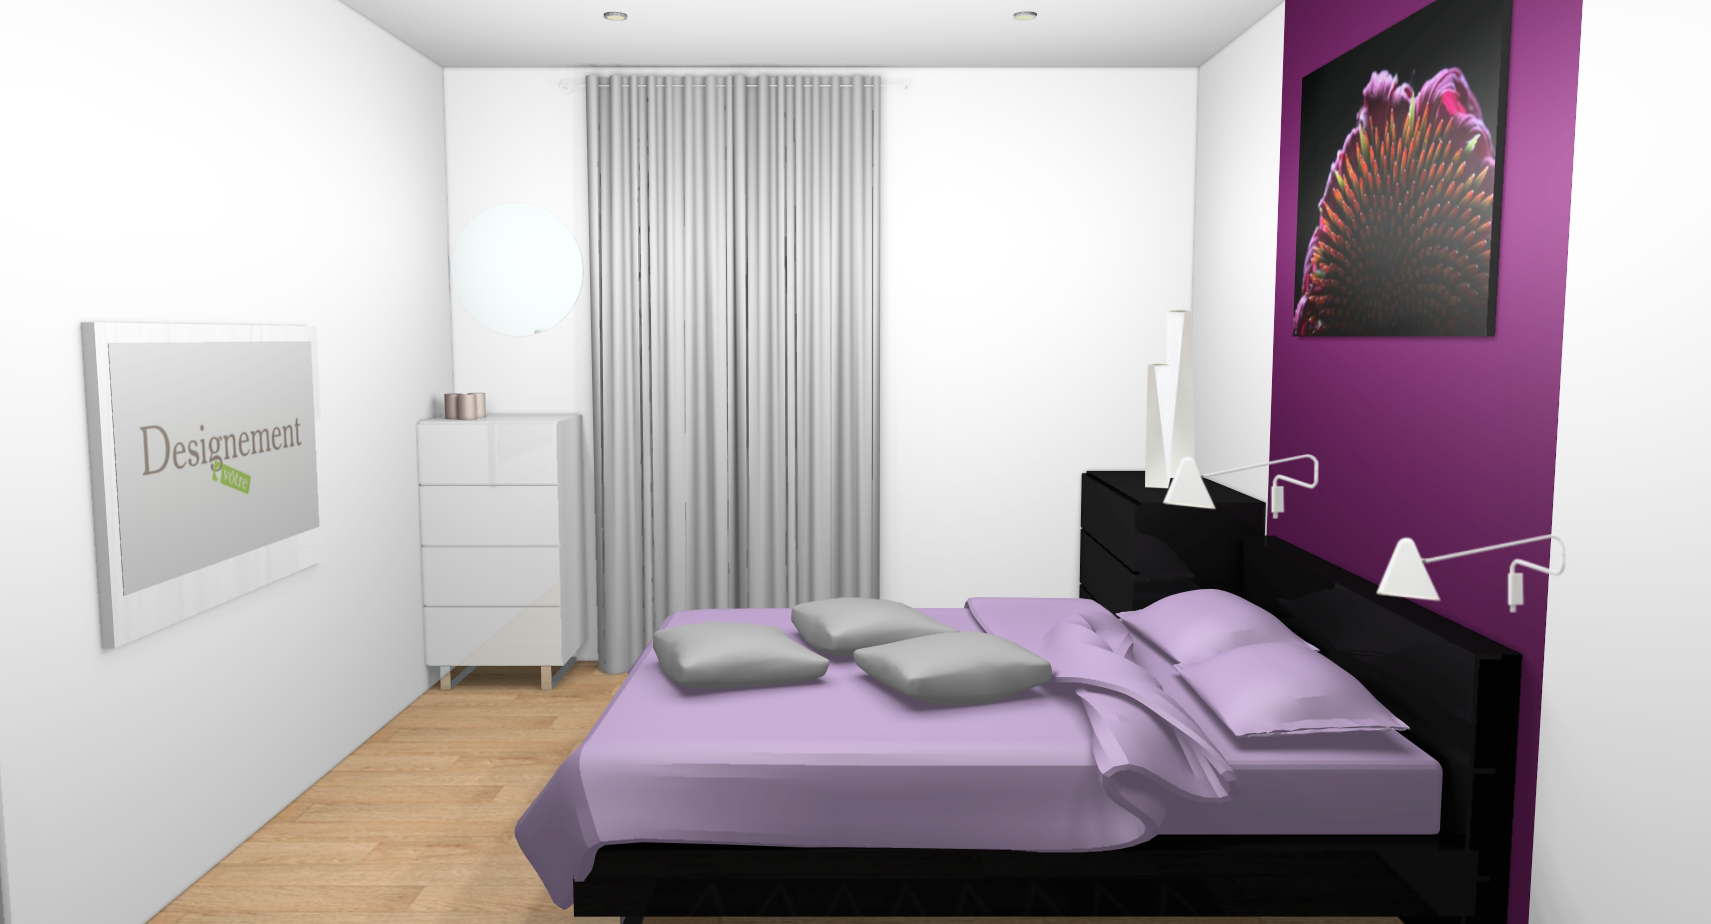 D coration chambre prune exemples d 39 am nagements for Decoration pour une chambre